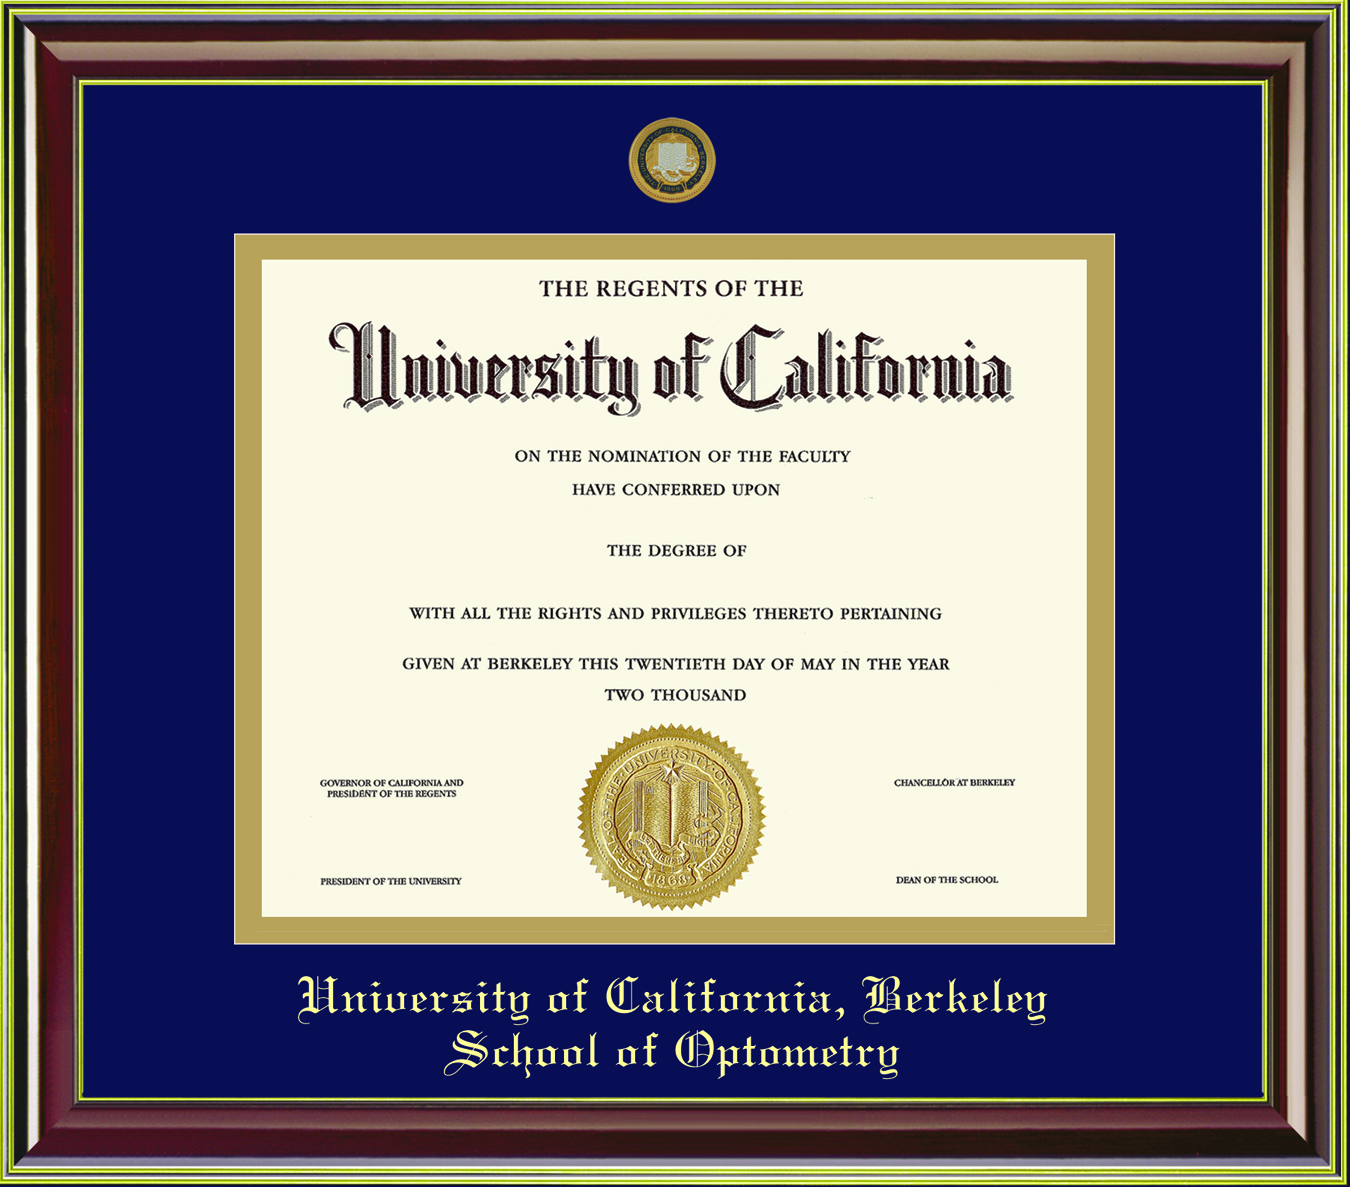 University of California Berkeley Mahogany Gold 11x14 School of Optometry Diploma Frame